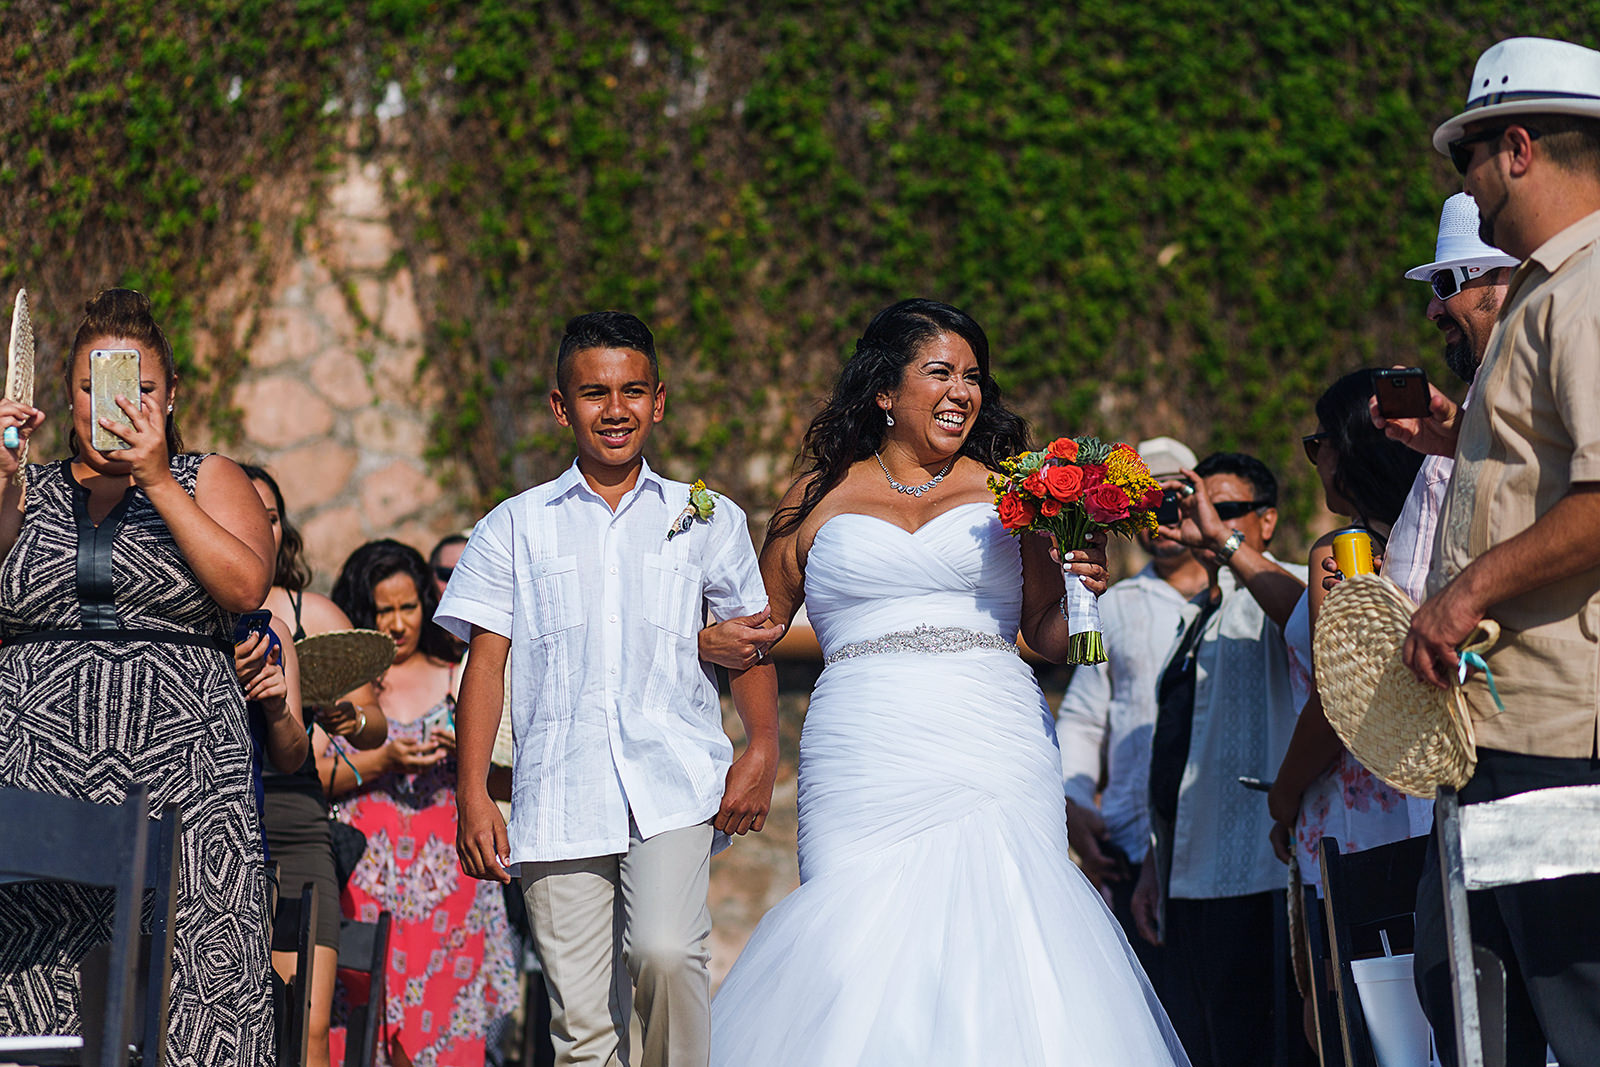 Bride and son walking down the aisle for wedding ceremony